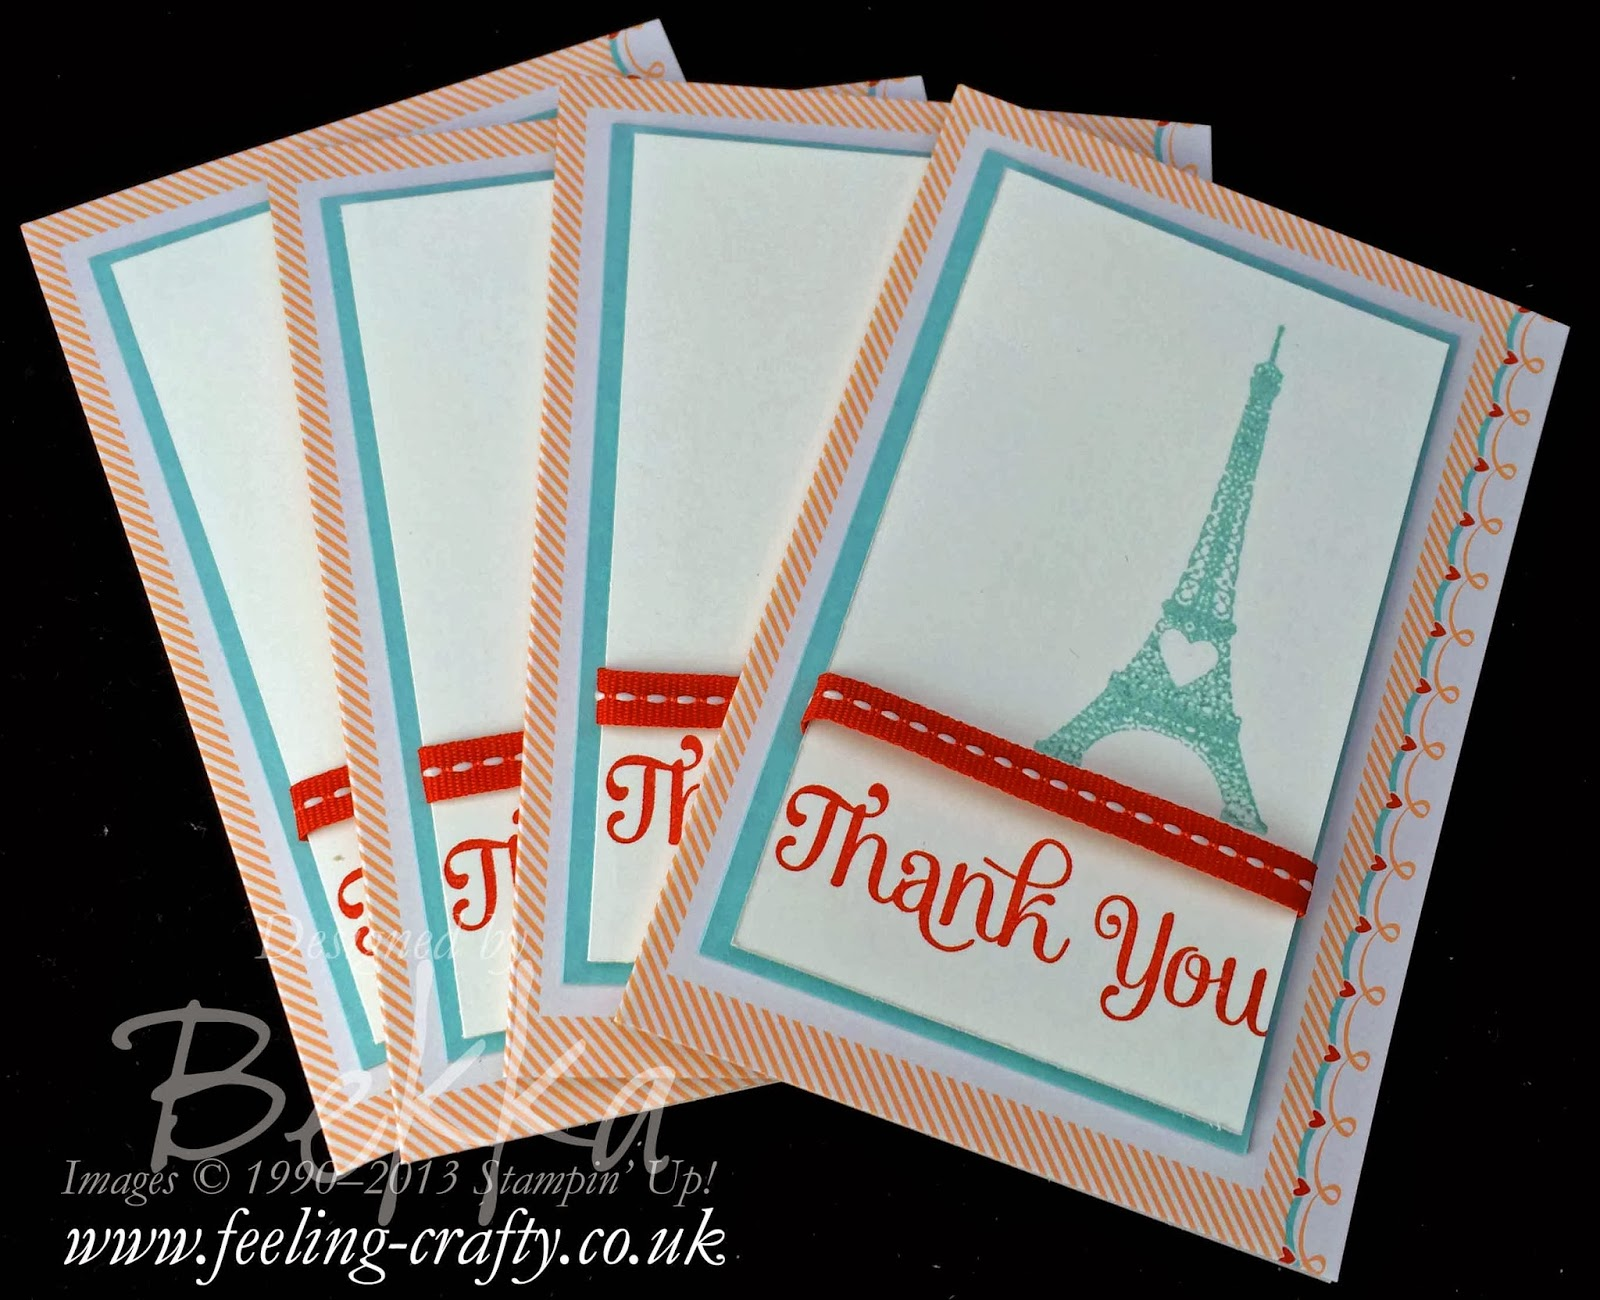 Follow Your Heart Sweet Sayings Thank You Cards by UK based Stampin' Up! Demonstrator Bekka Prideaux - check out her blog for lots of ideas